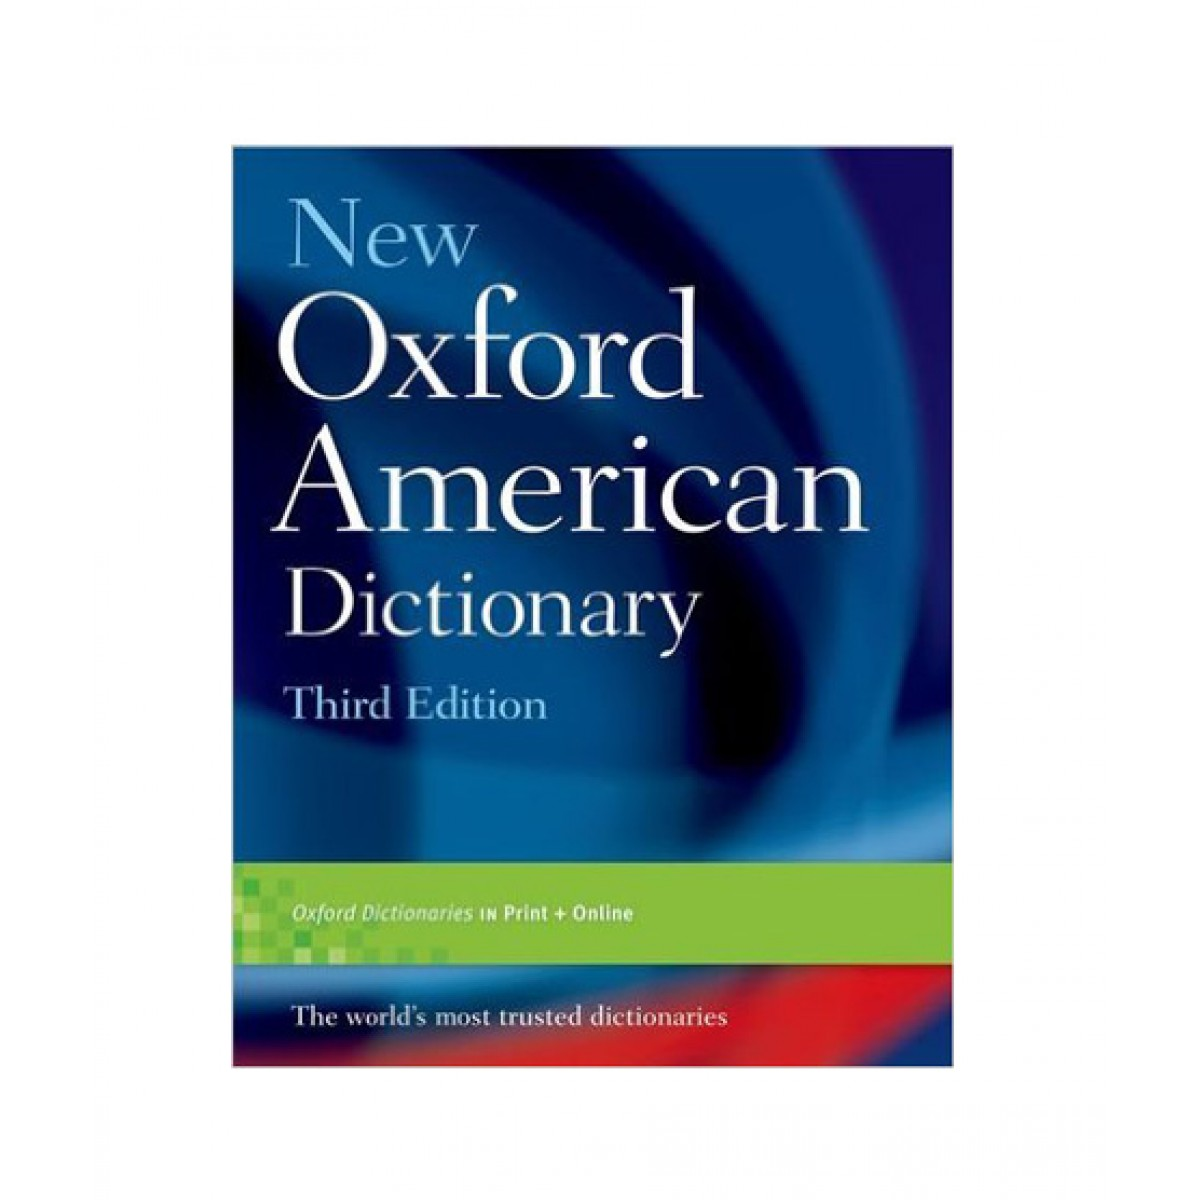 New Oxford American Dictionary Book 3rd Edition